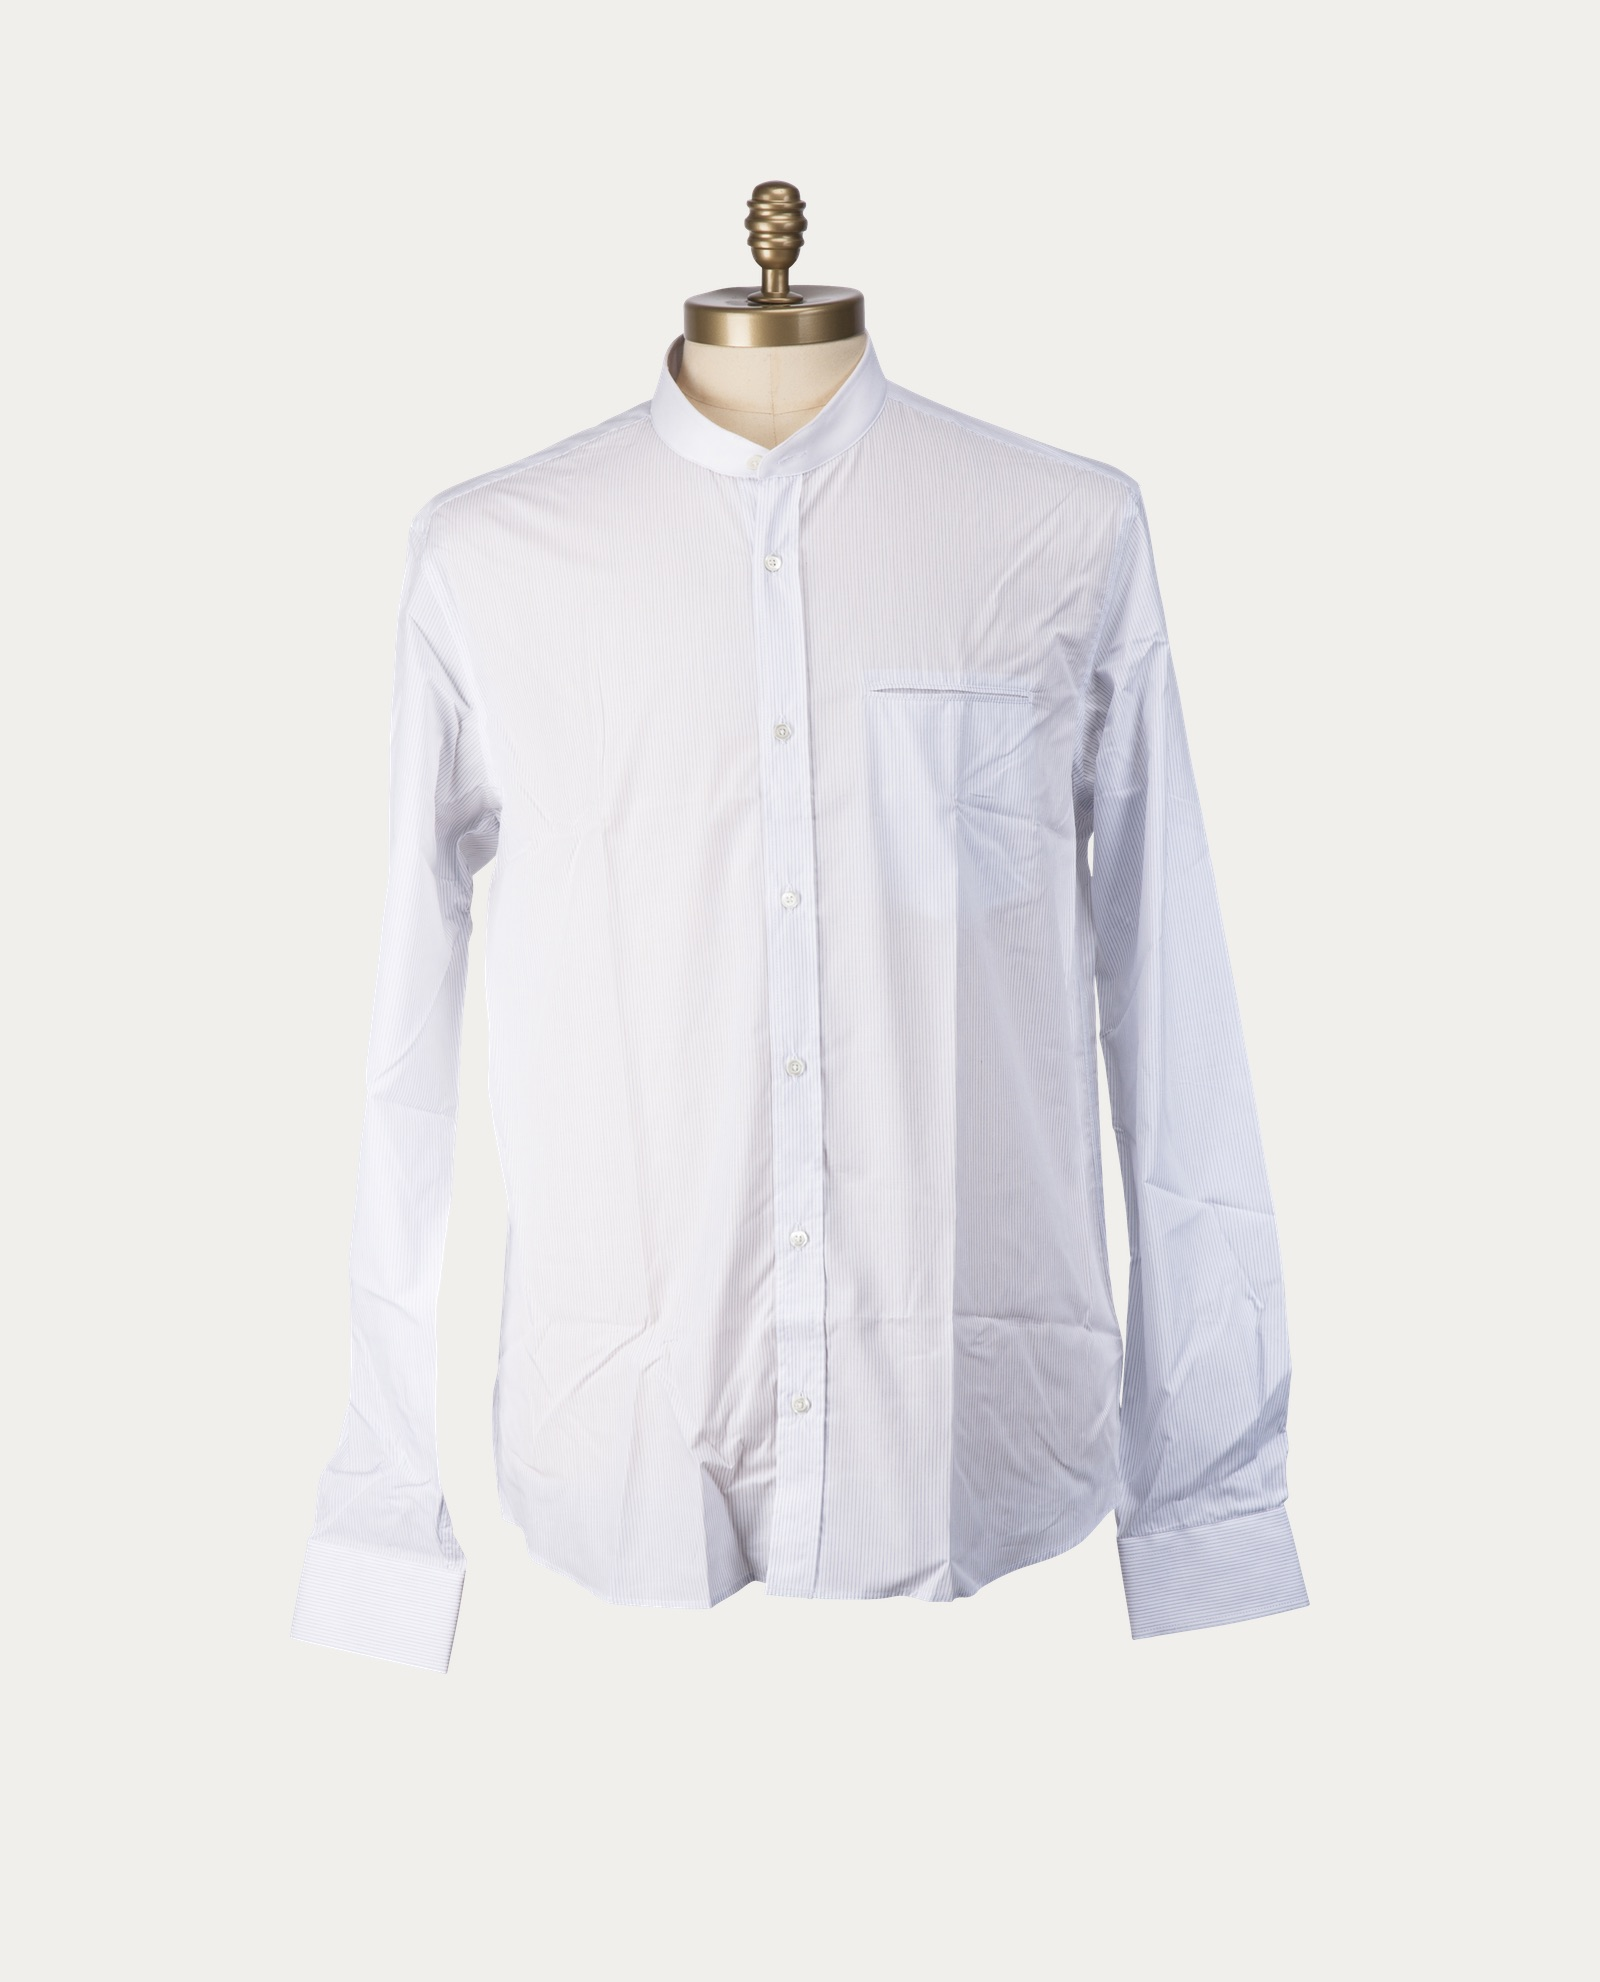 tonsor_cie_chemise_blanche_rayures_col_officier